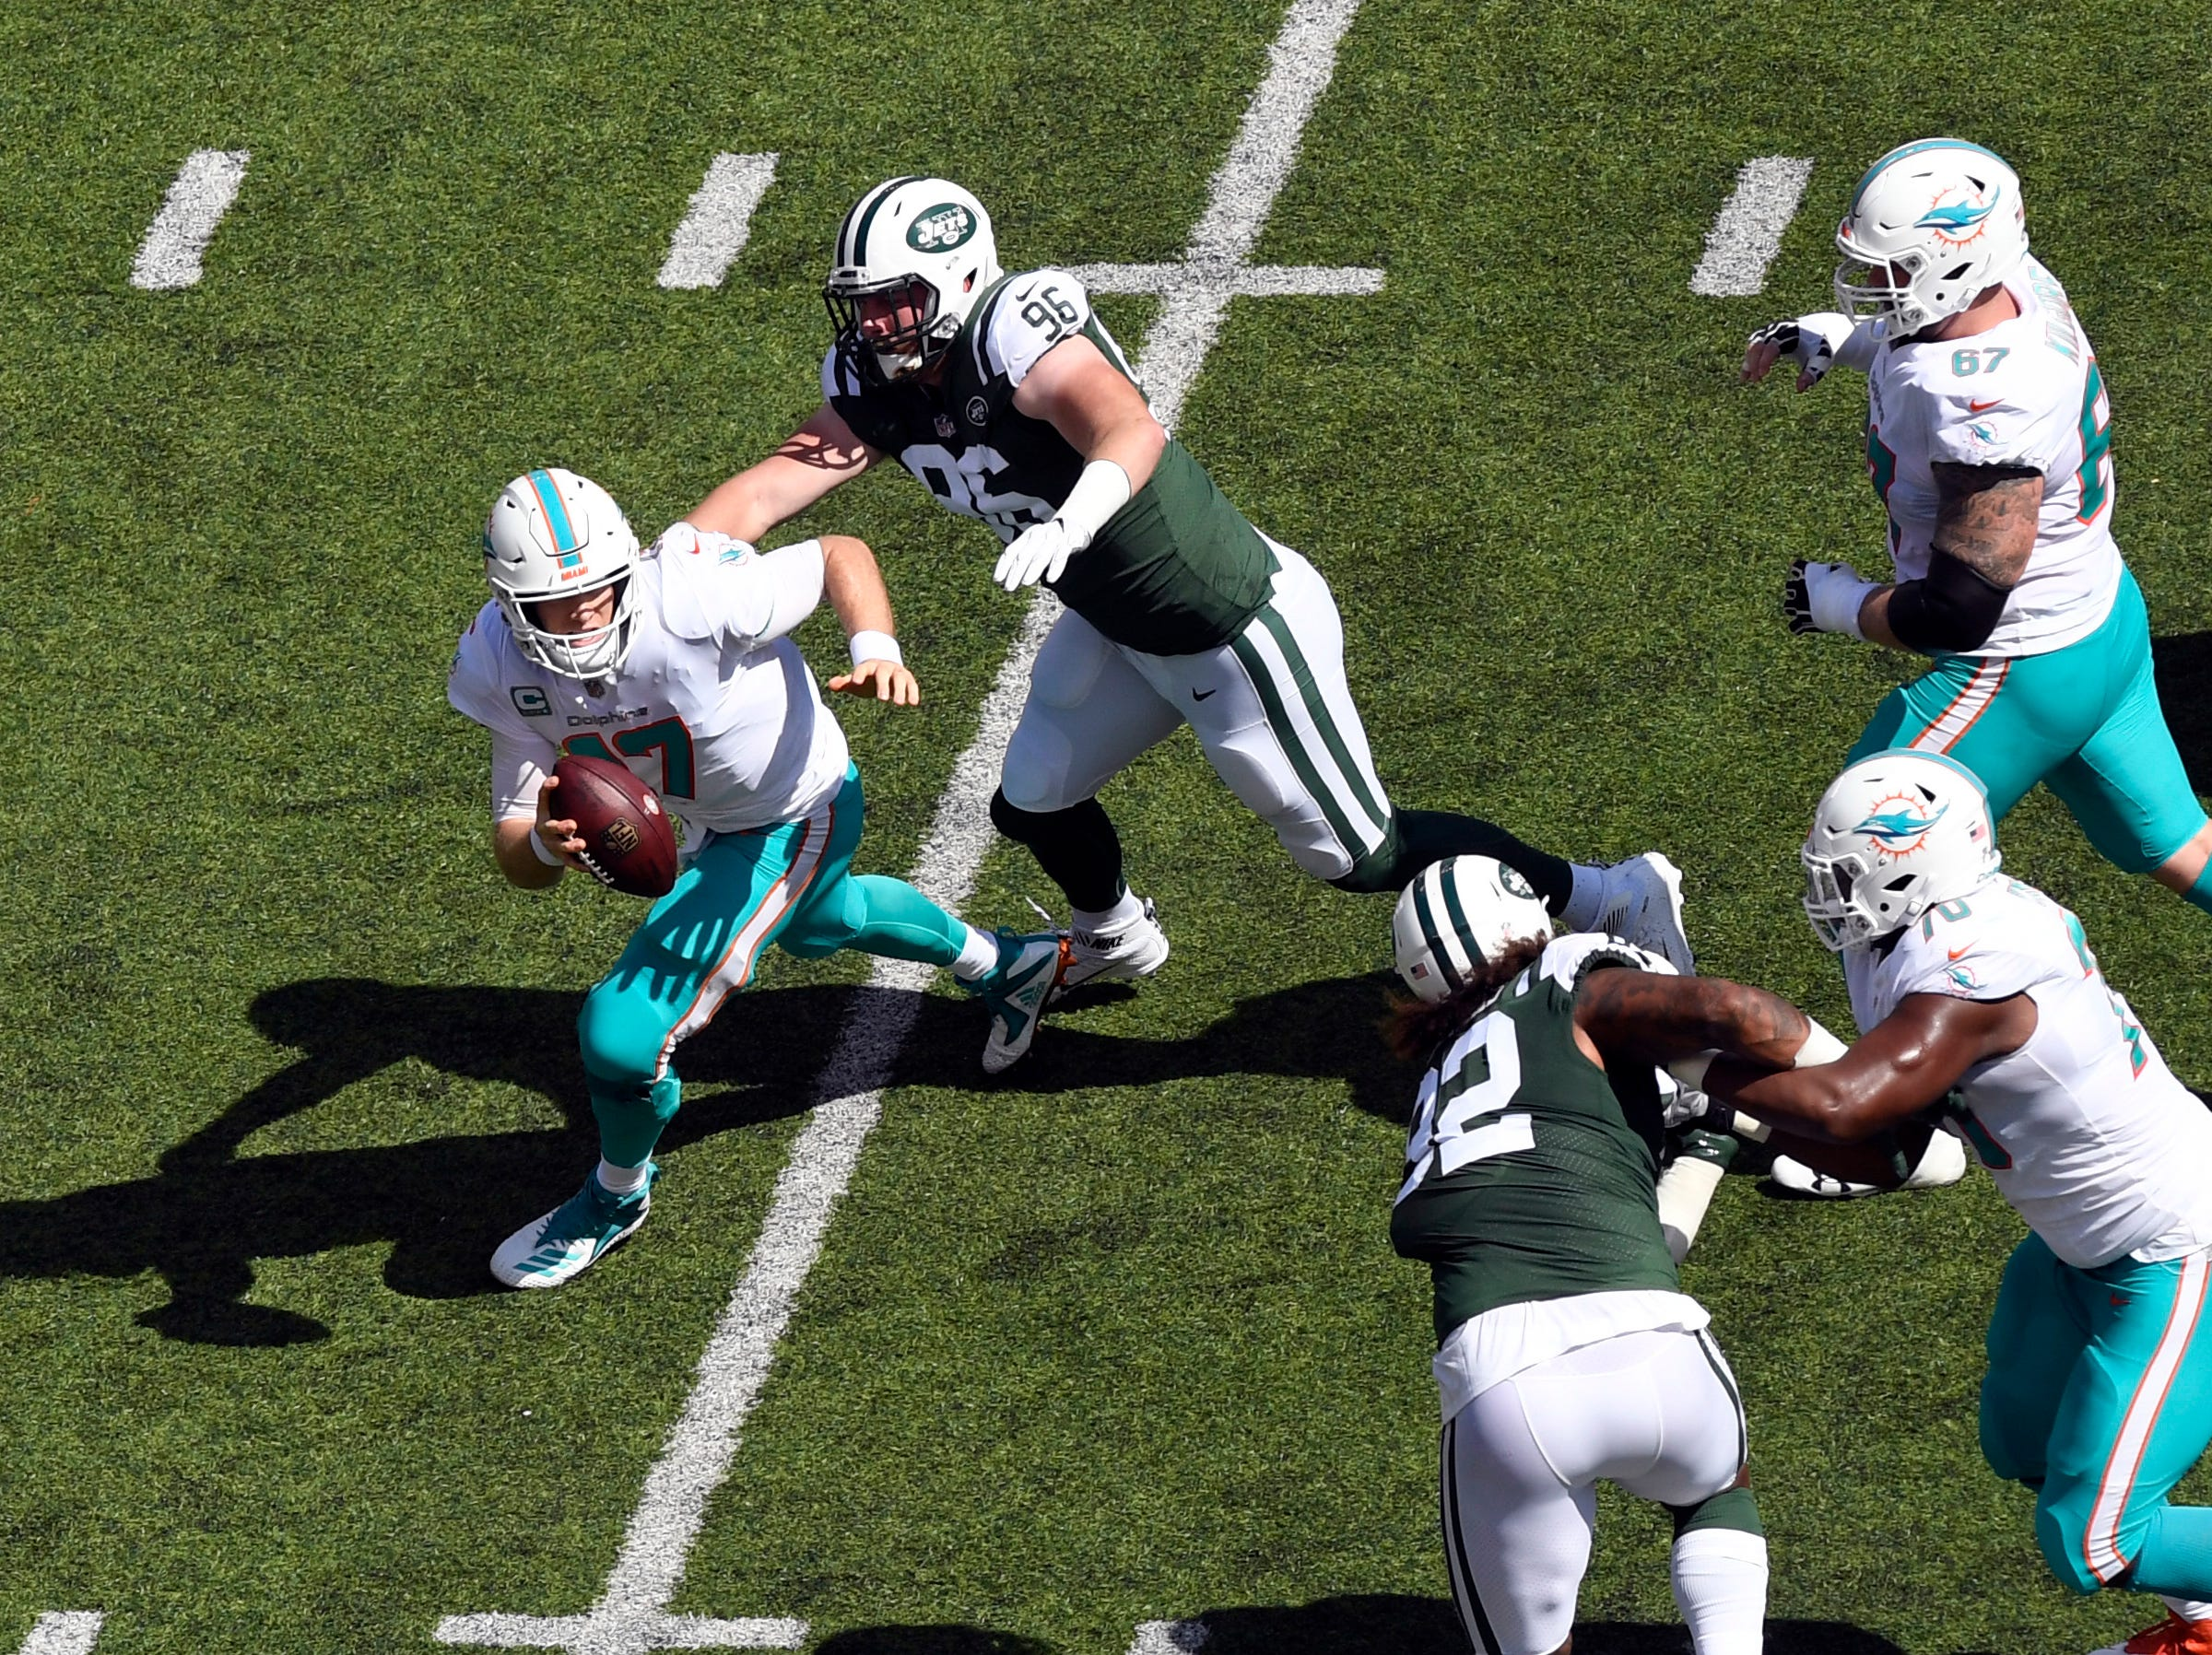 New York Jets defensive end Henry Anderson (96) rushes to sack Miami Dolphins quarterback Ryan Tannehill (17) in Week 2 at MetLife Stadium in East Rutherford, NJ on Sunday, September 16, 2018.